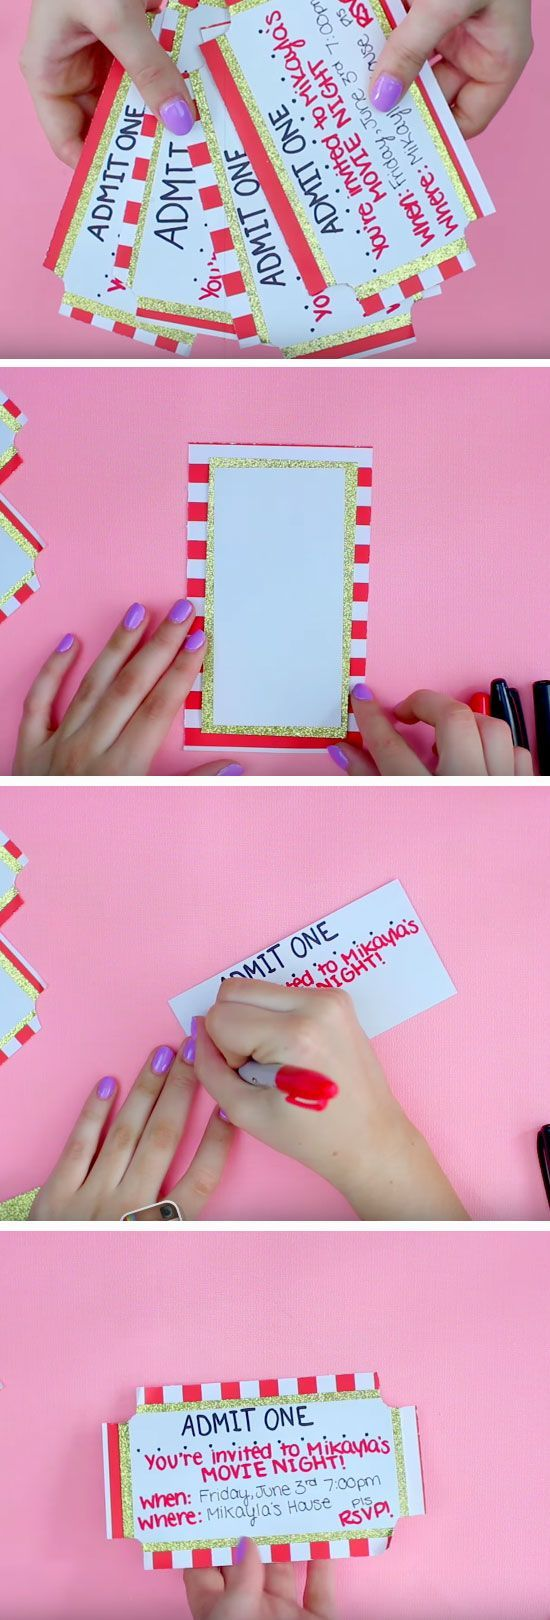 Movie Ticket | 19 DIY Movie Night Ideas for Teens that will get the party started!